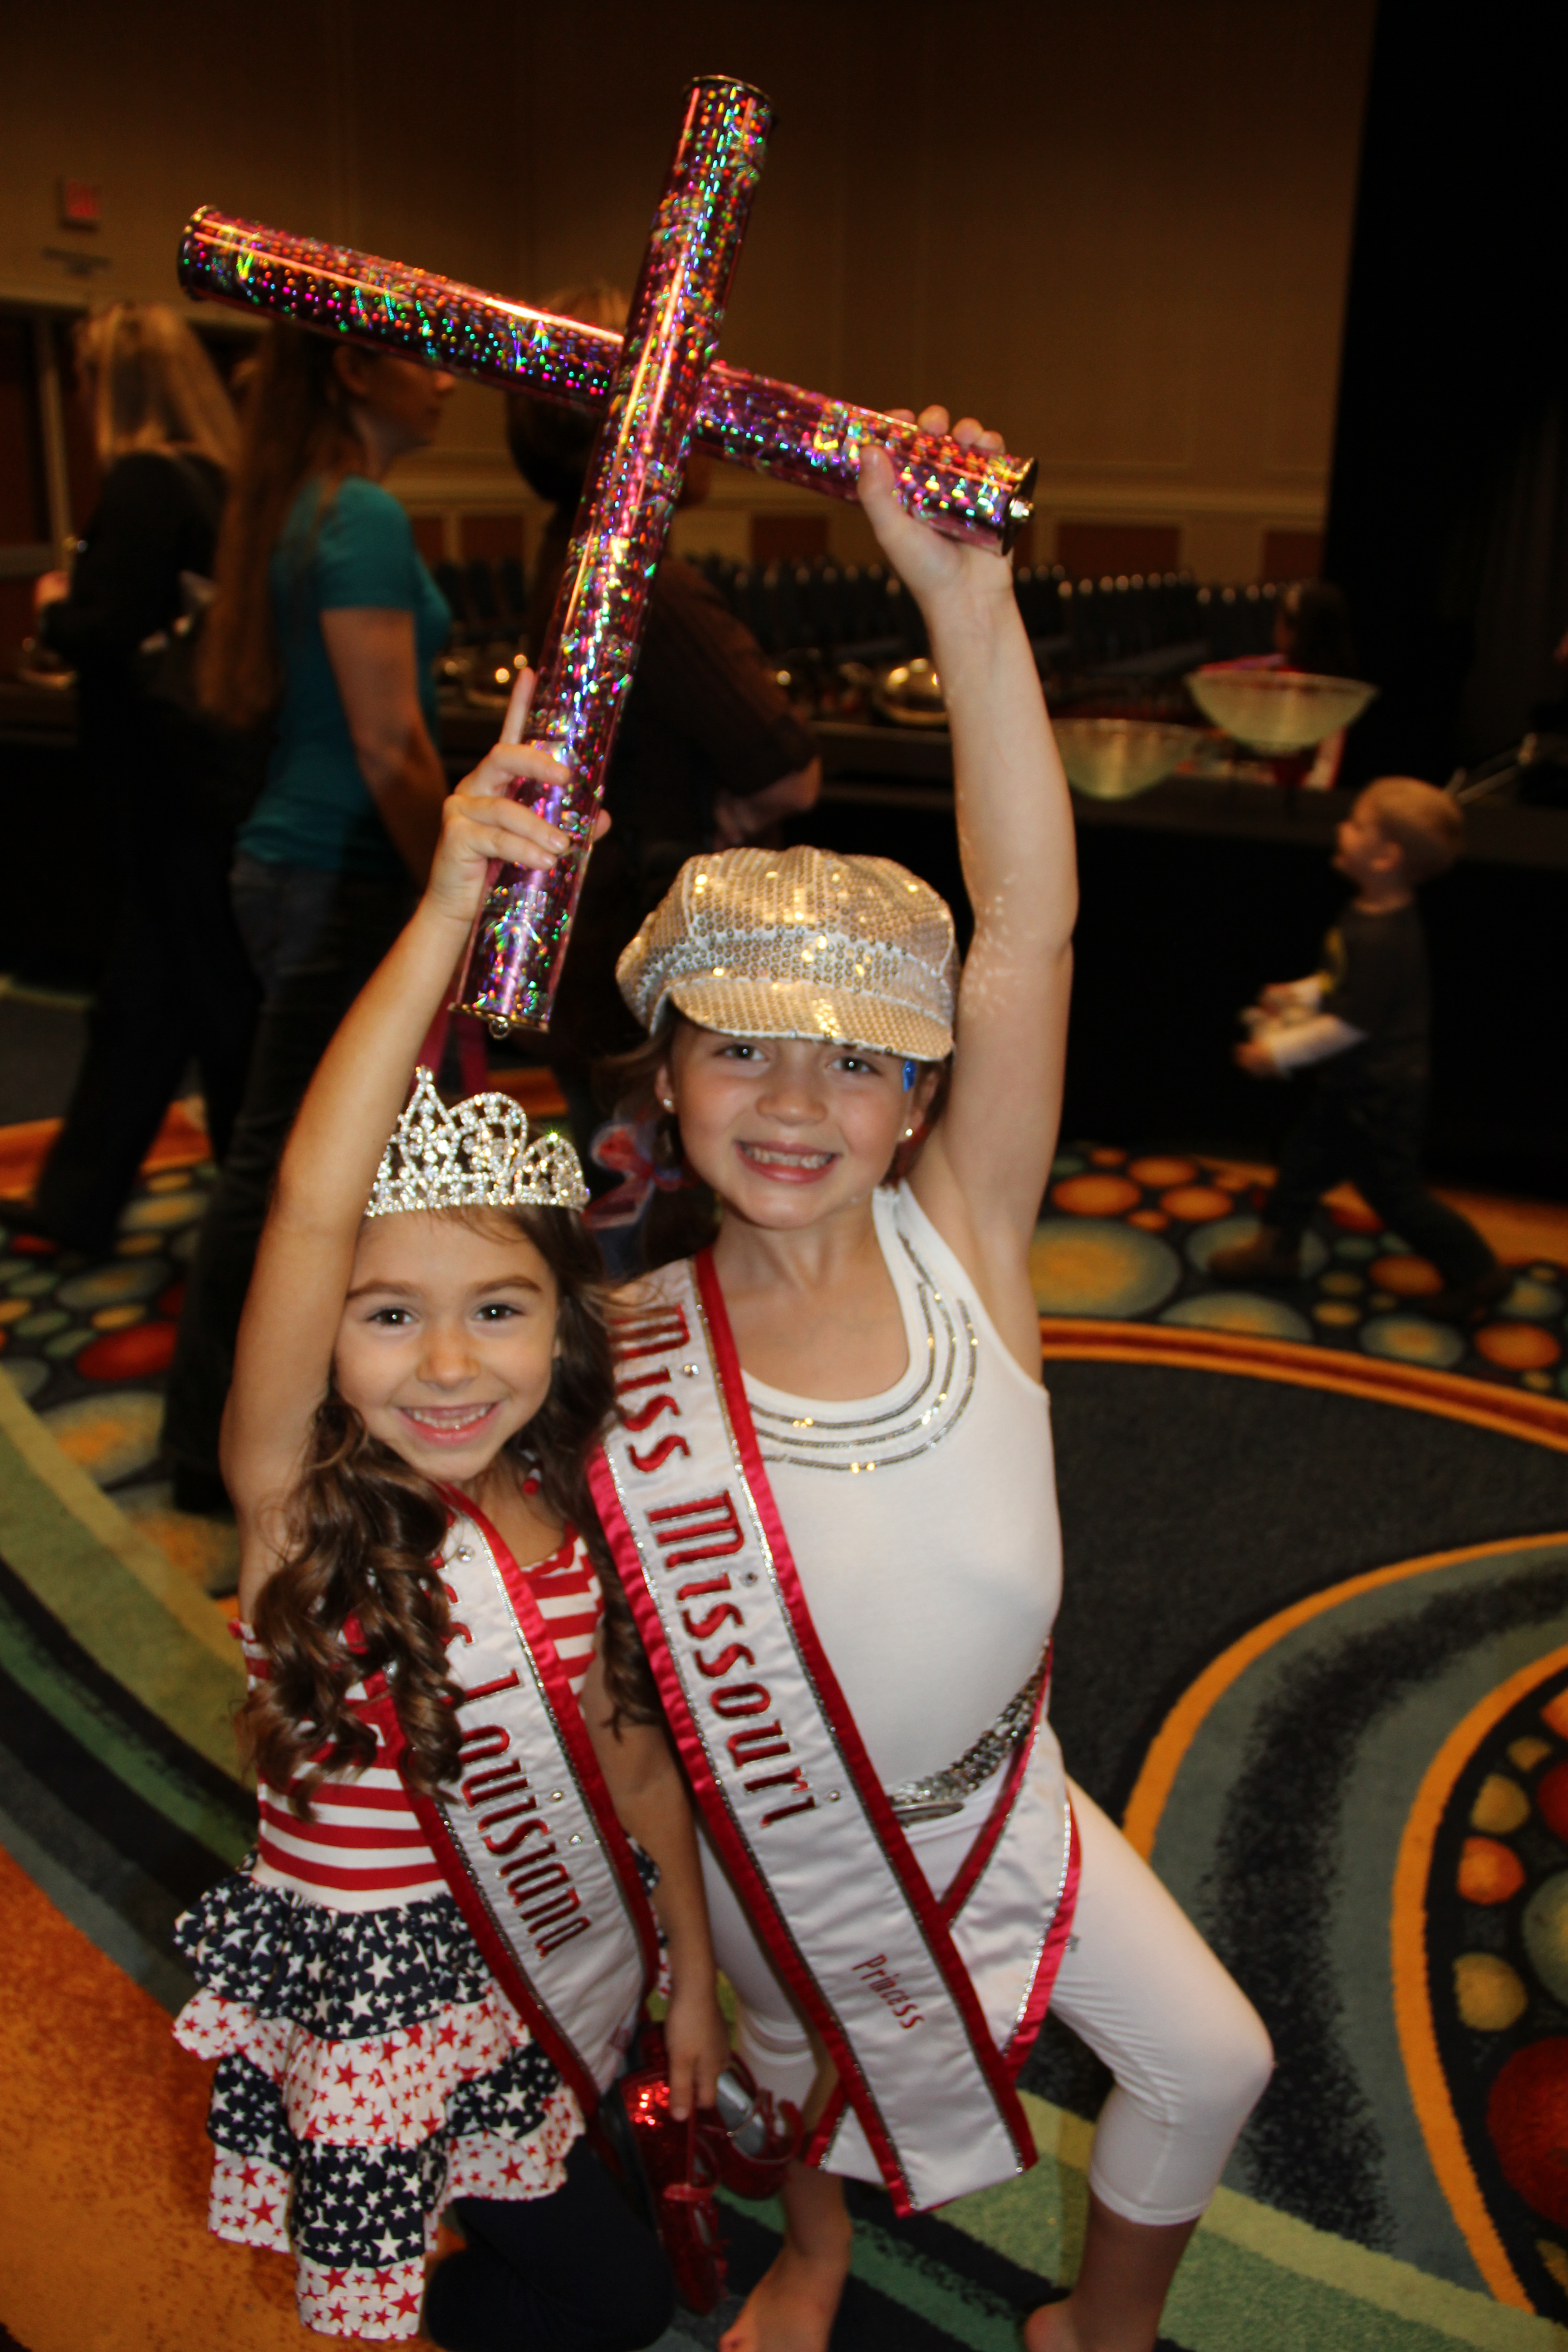 Missouri and Louisiana Princess Queens LOVE spirit sticks!